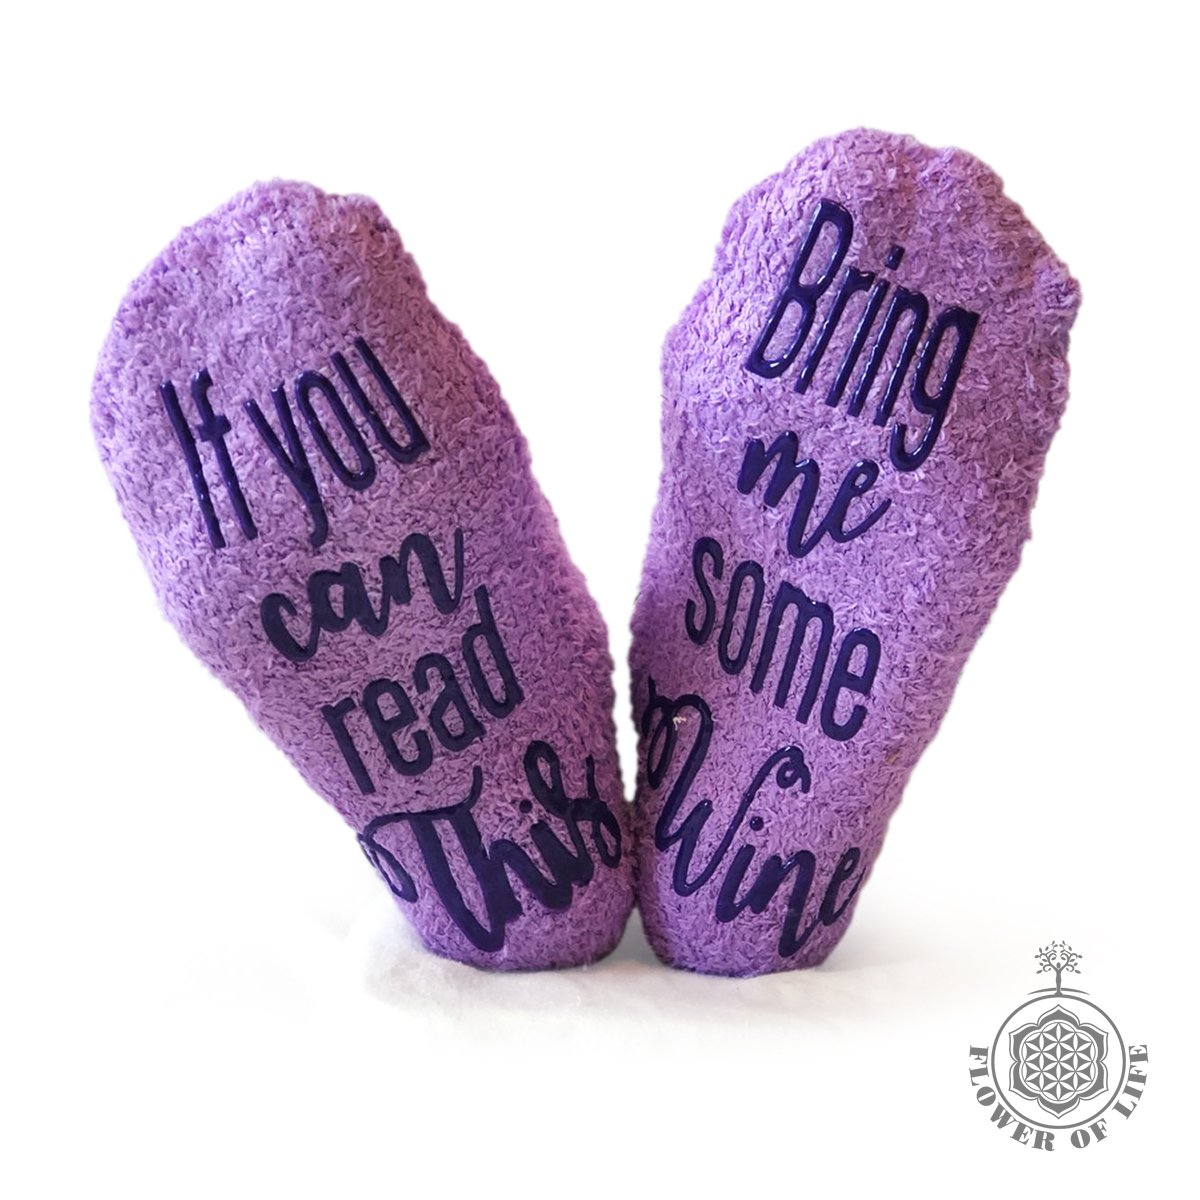 Gifts for Women - Birthday Gift for Her Mom - Funny Wine Socks - Purple with Cotton Bag and Anti-slip by FOLE INC by FOLE